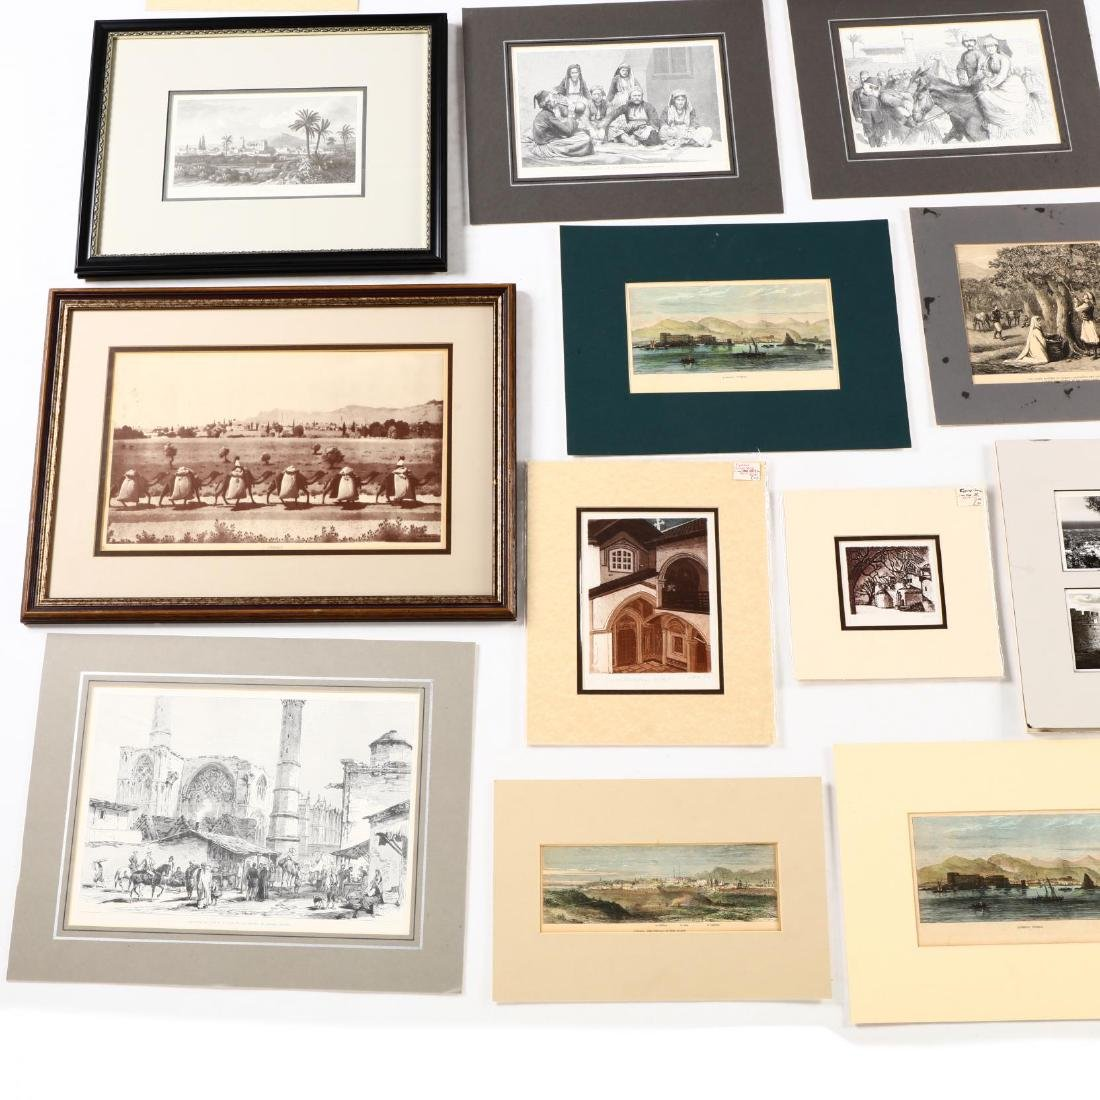 Group of Engravings and Photographs Documenting Old - 2